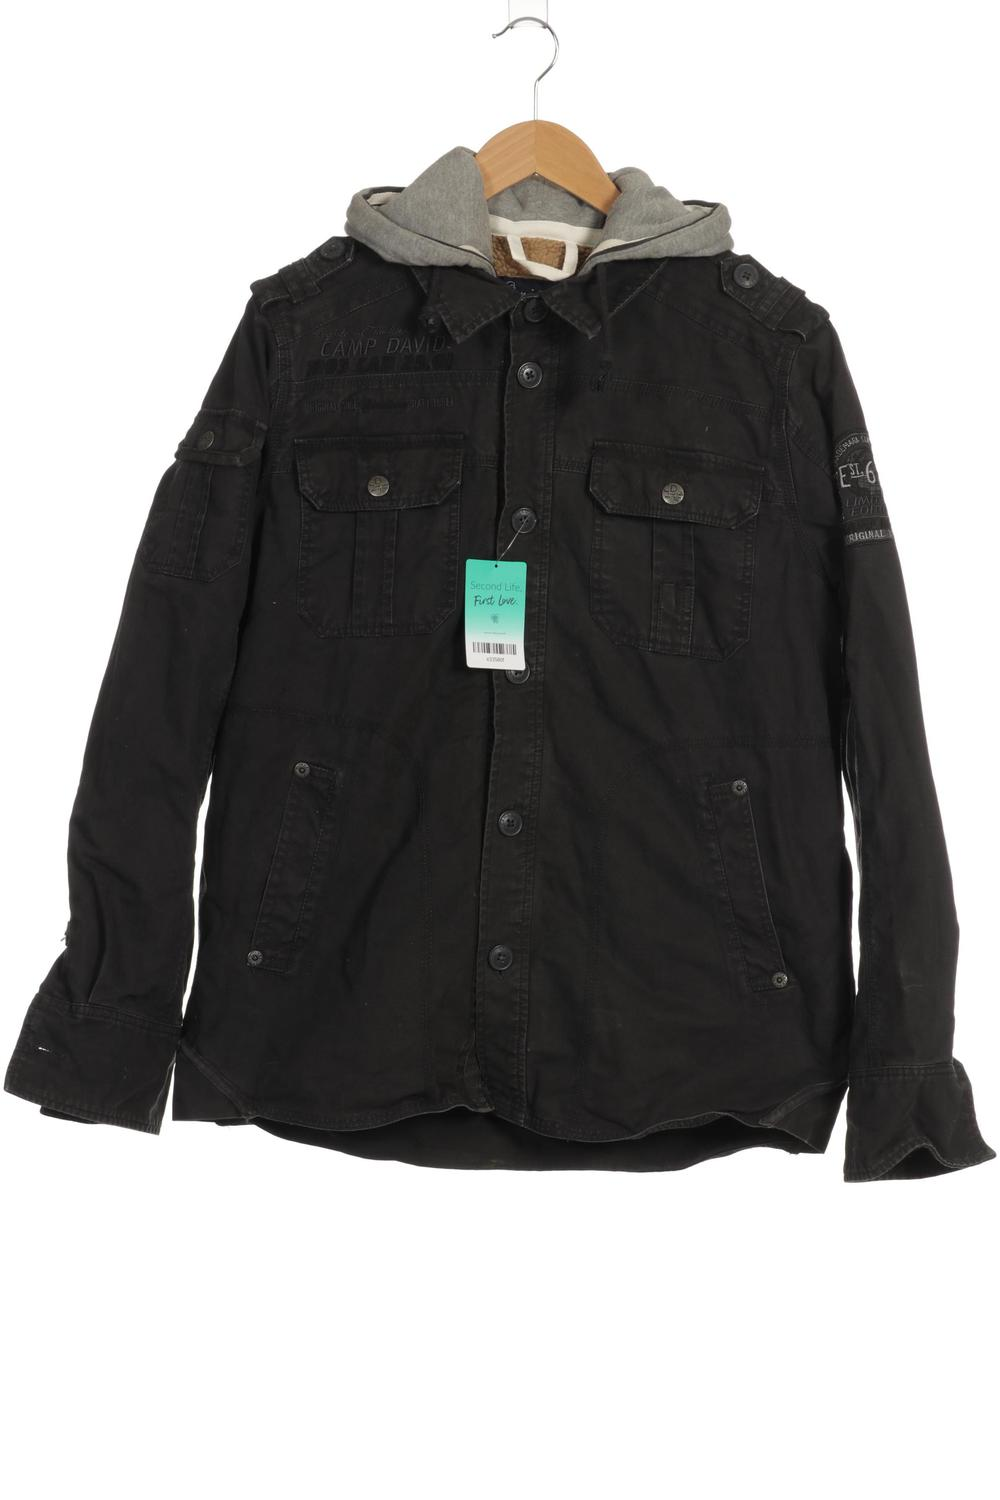 Camp David Herren Jacke INT M Second Hand kaufen | ubup